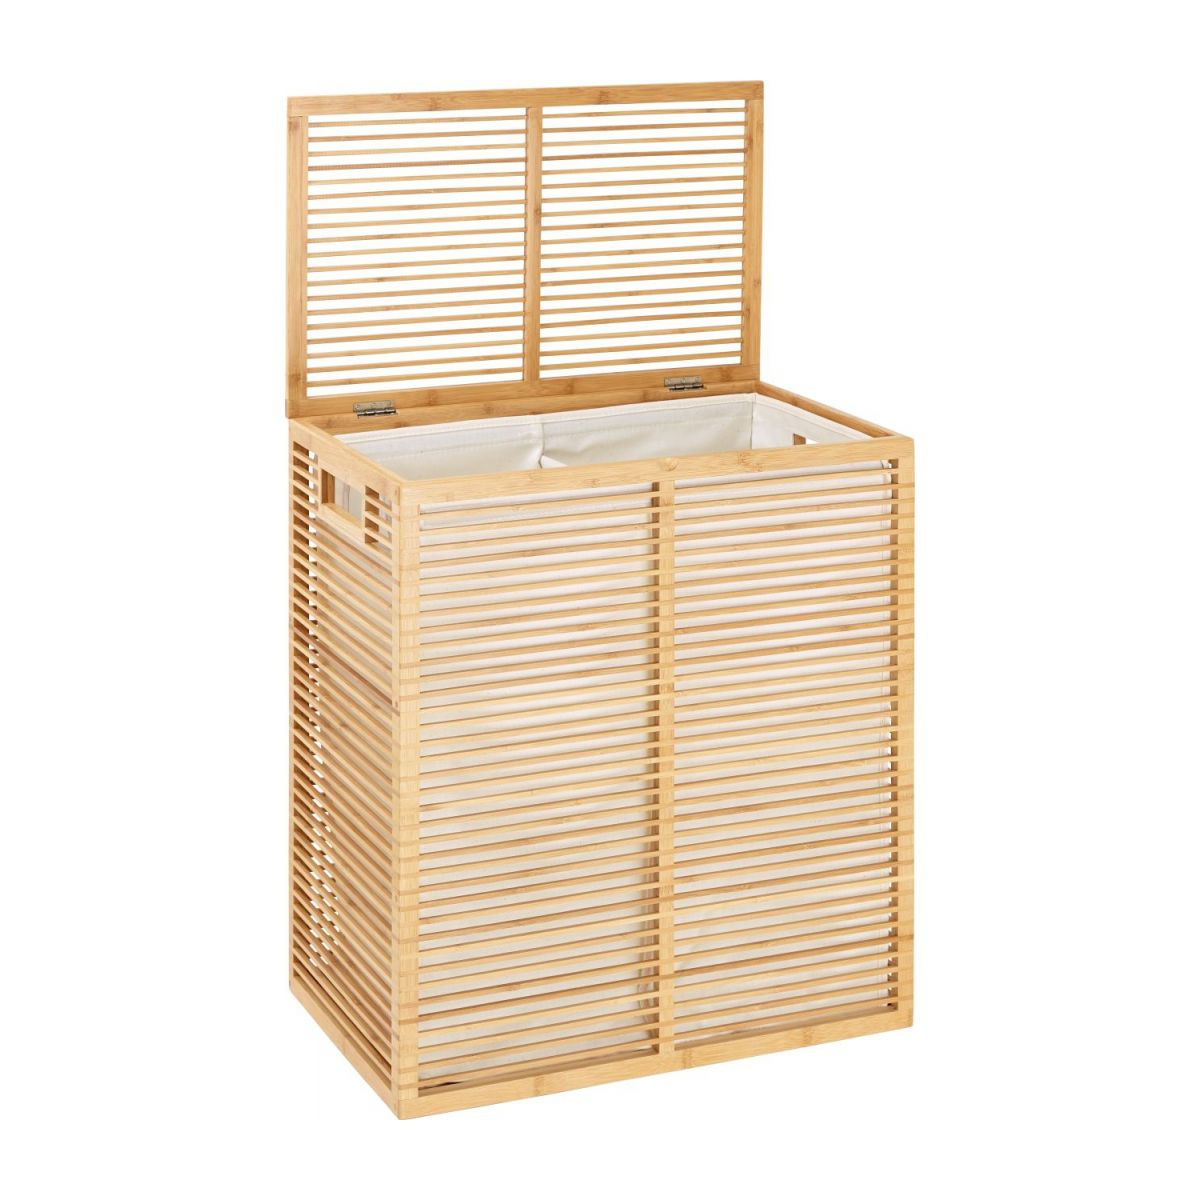 Laundry basket made of bamboo n°2